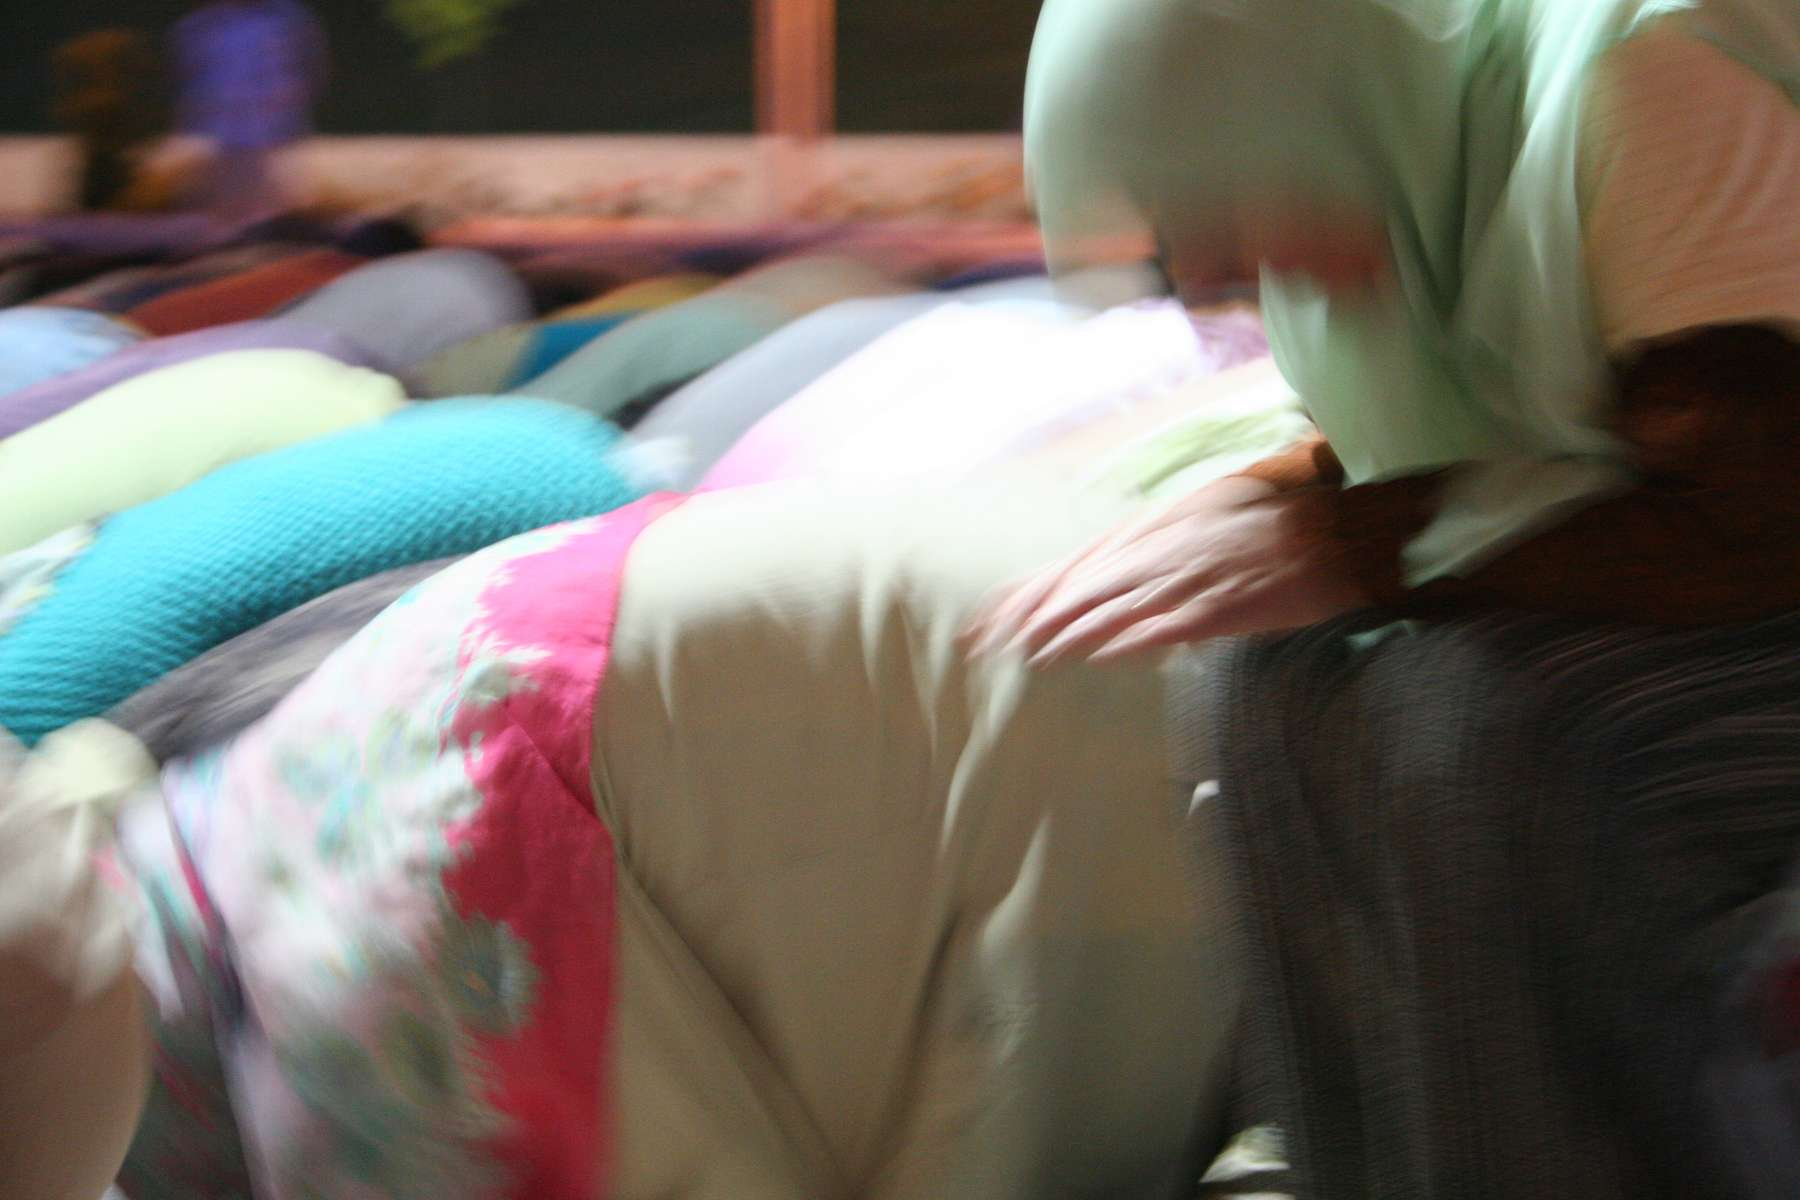 Muslim women during prayers held the evening before the July 11 commemoration ceremonies marking the tenth anniversary of the Srebrenica massacre in 1995.